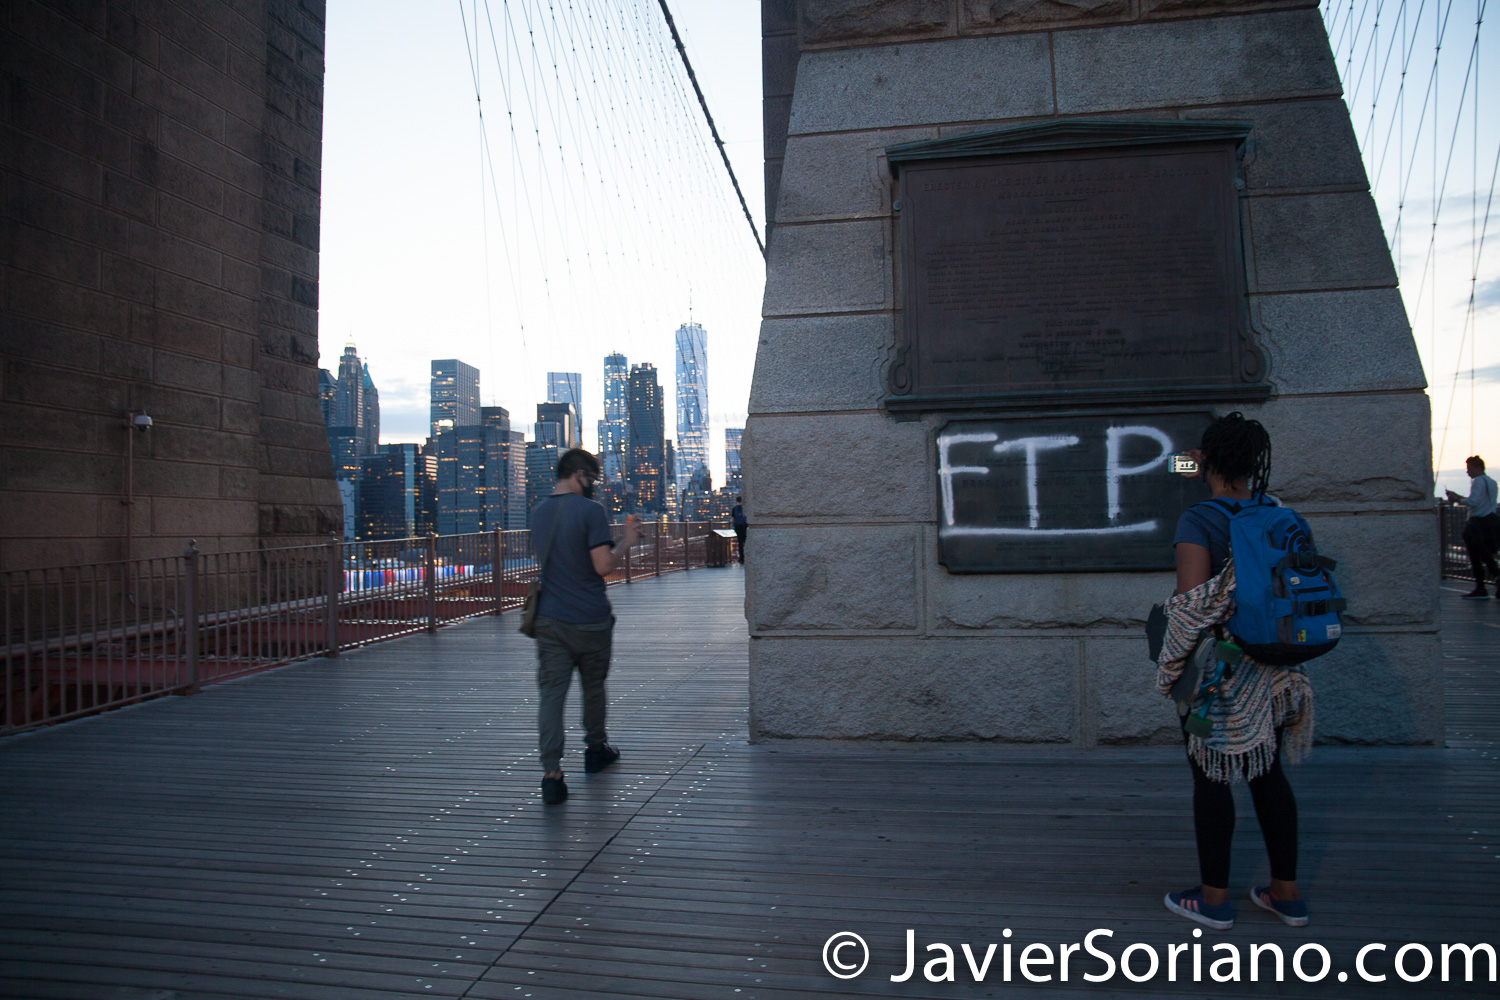 Monday, June 1, 2020. New York City - March from Barclays Center in Brooklyn to Manhattan. People demand justice for George Floyd and other people killed by police officers. This is the Brooklyn Bridge. Photo by Javier Soriano/www.JavierSoriano.com